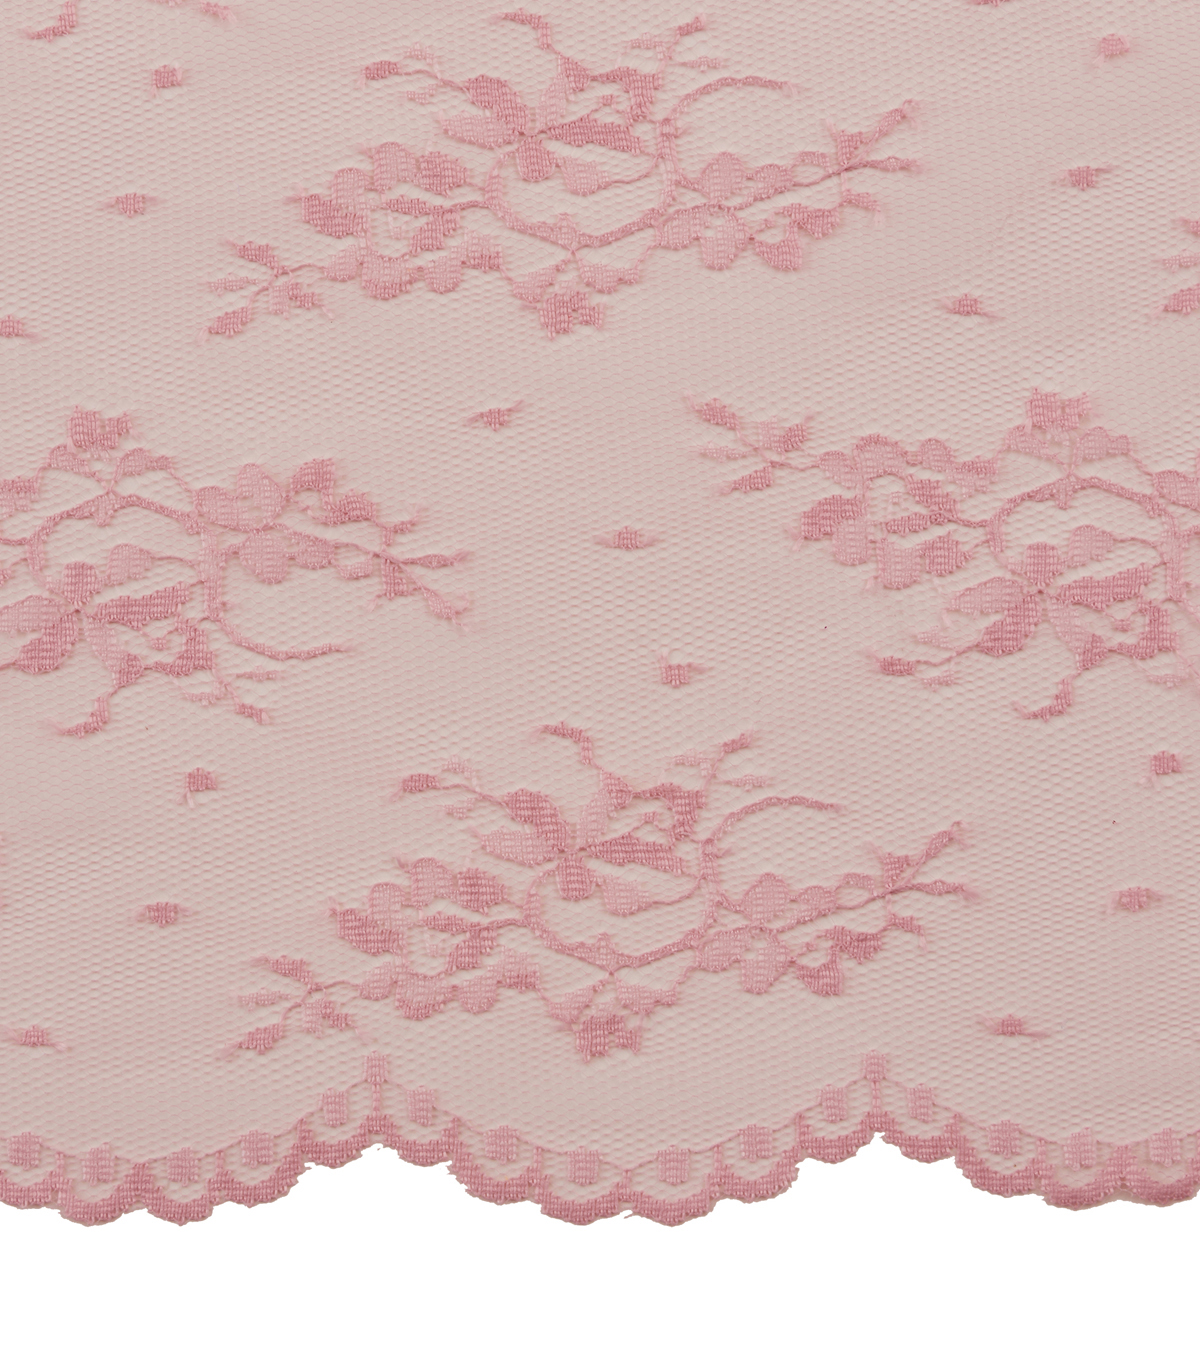 Casa Collection Chantilly Lace Fabric -Solids, Peachskin